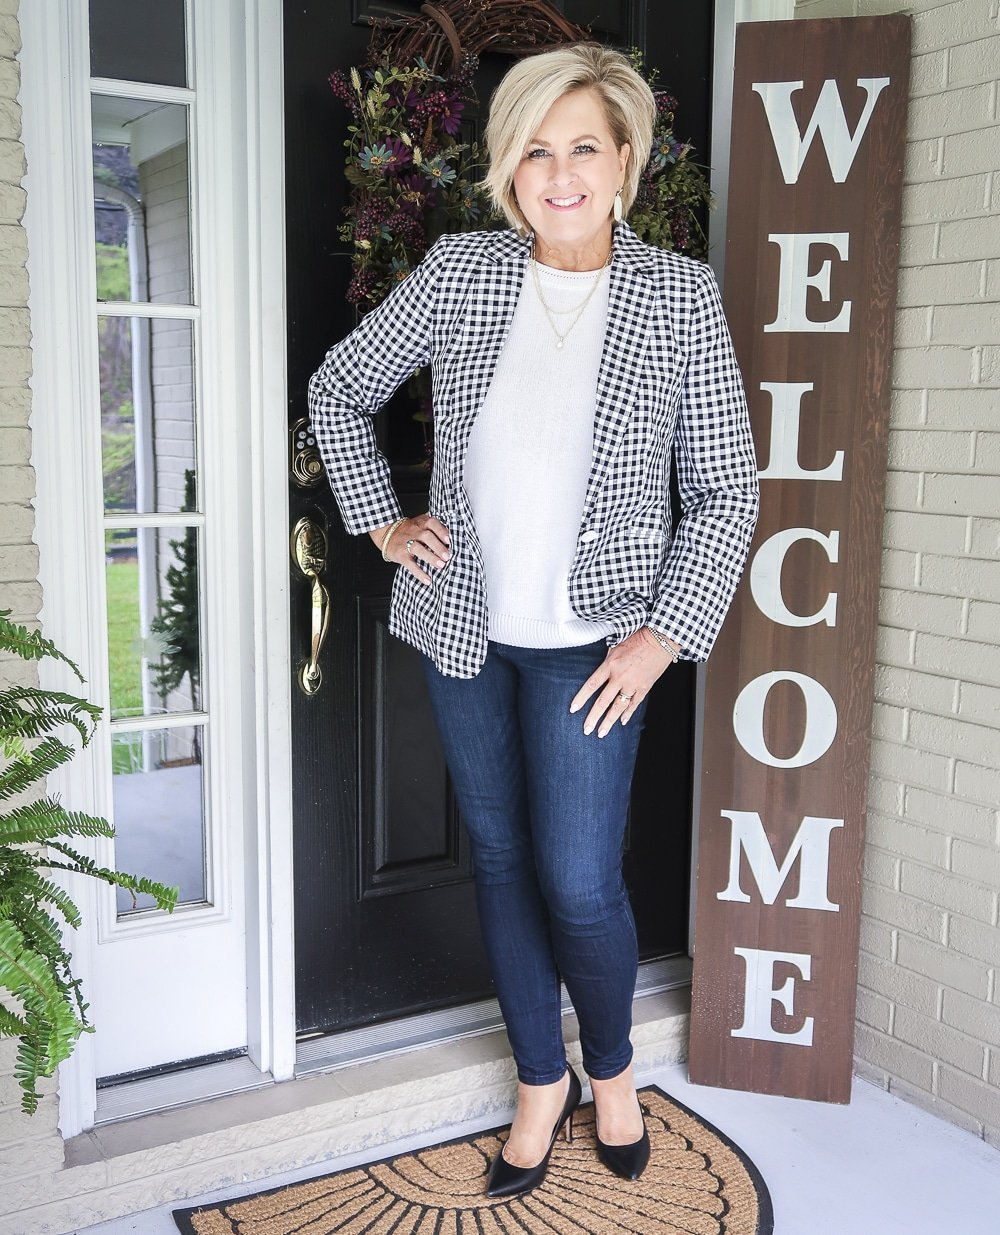 Fashion Blogger 50 Is Not Old is wearing a white sweater and a black and white gingham blazer with dark skinny jeans and black pumps